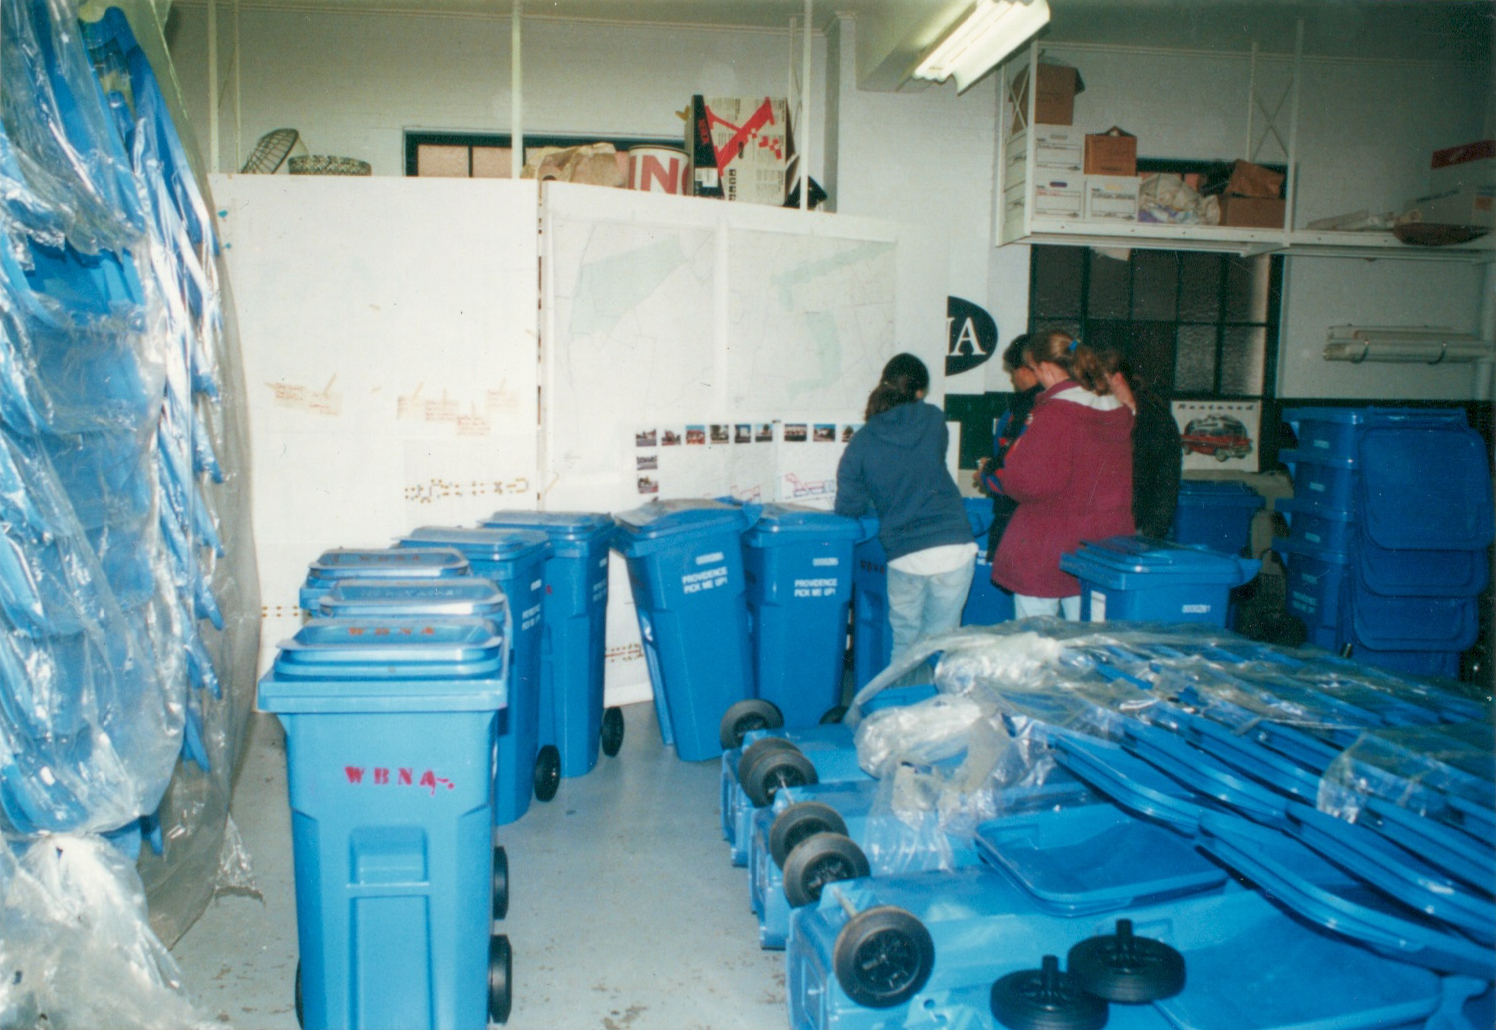 The WBNA pilot program's first batch of rat-proof cans were 33 gallons in capacity and donated by Mayor Vincent A. Cianci and the City of Providence (2000)